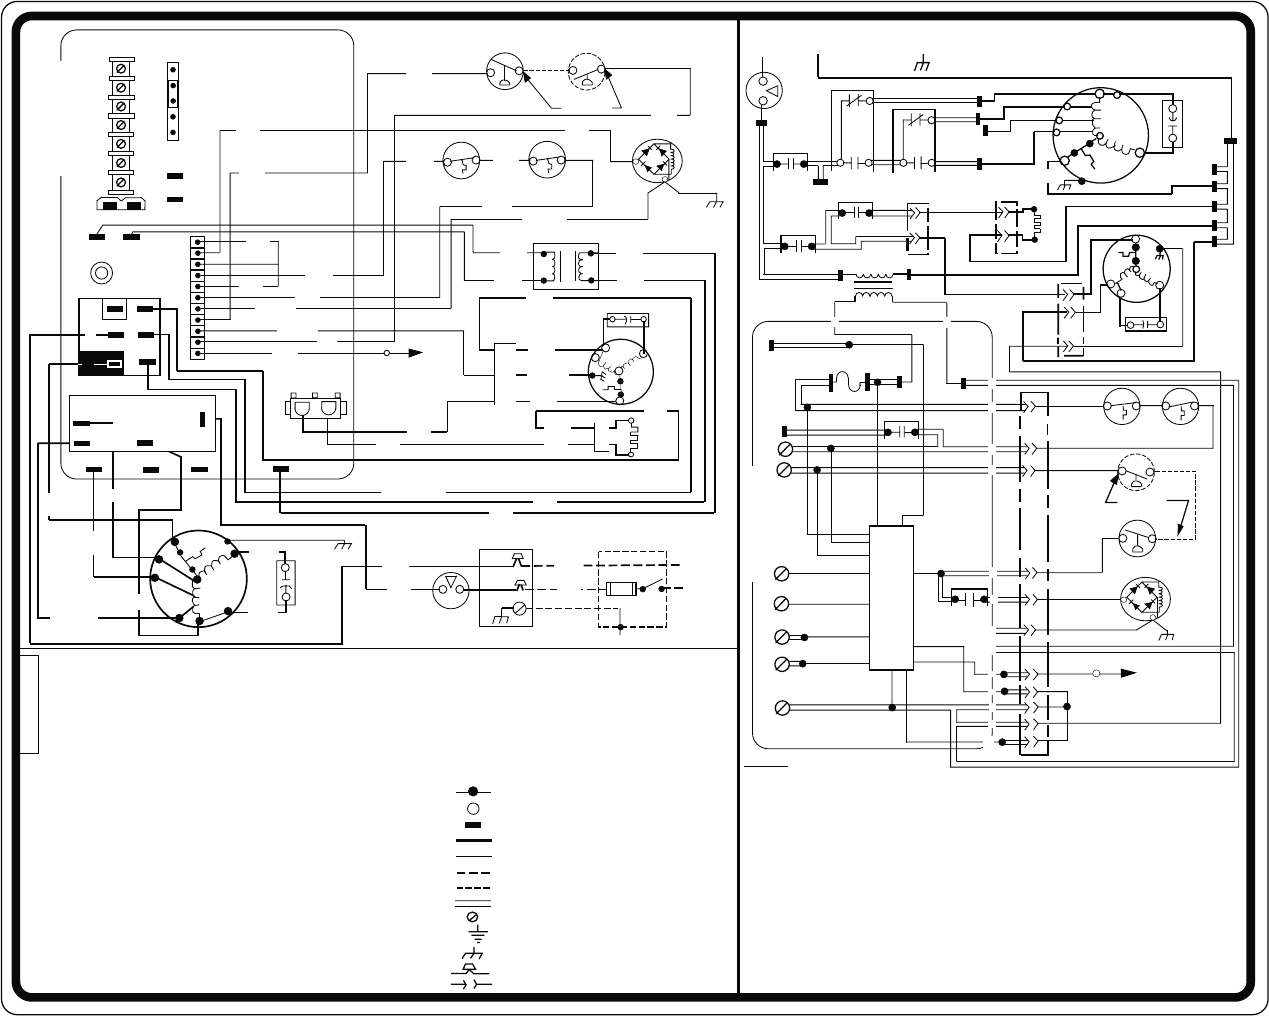 Wiring Diagram: 32 Bryant 350mav Parts Diagram